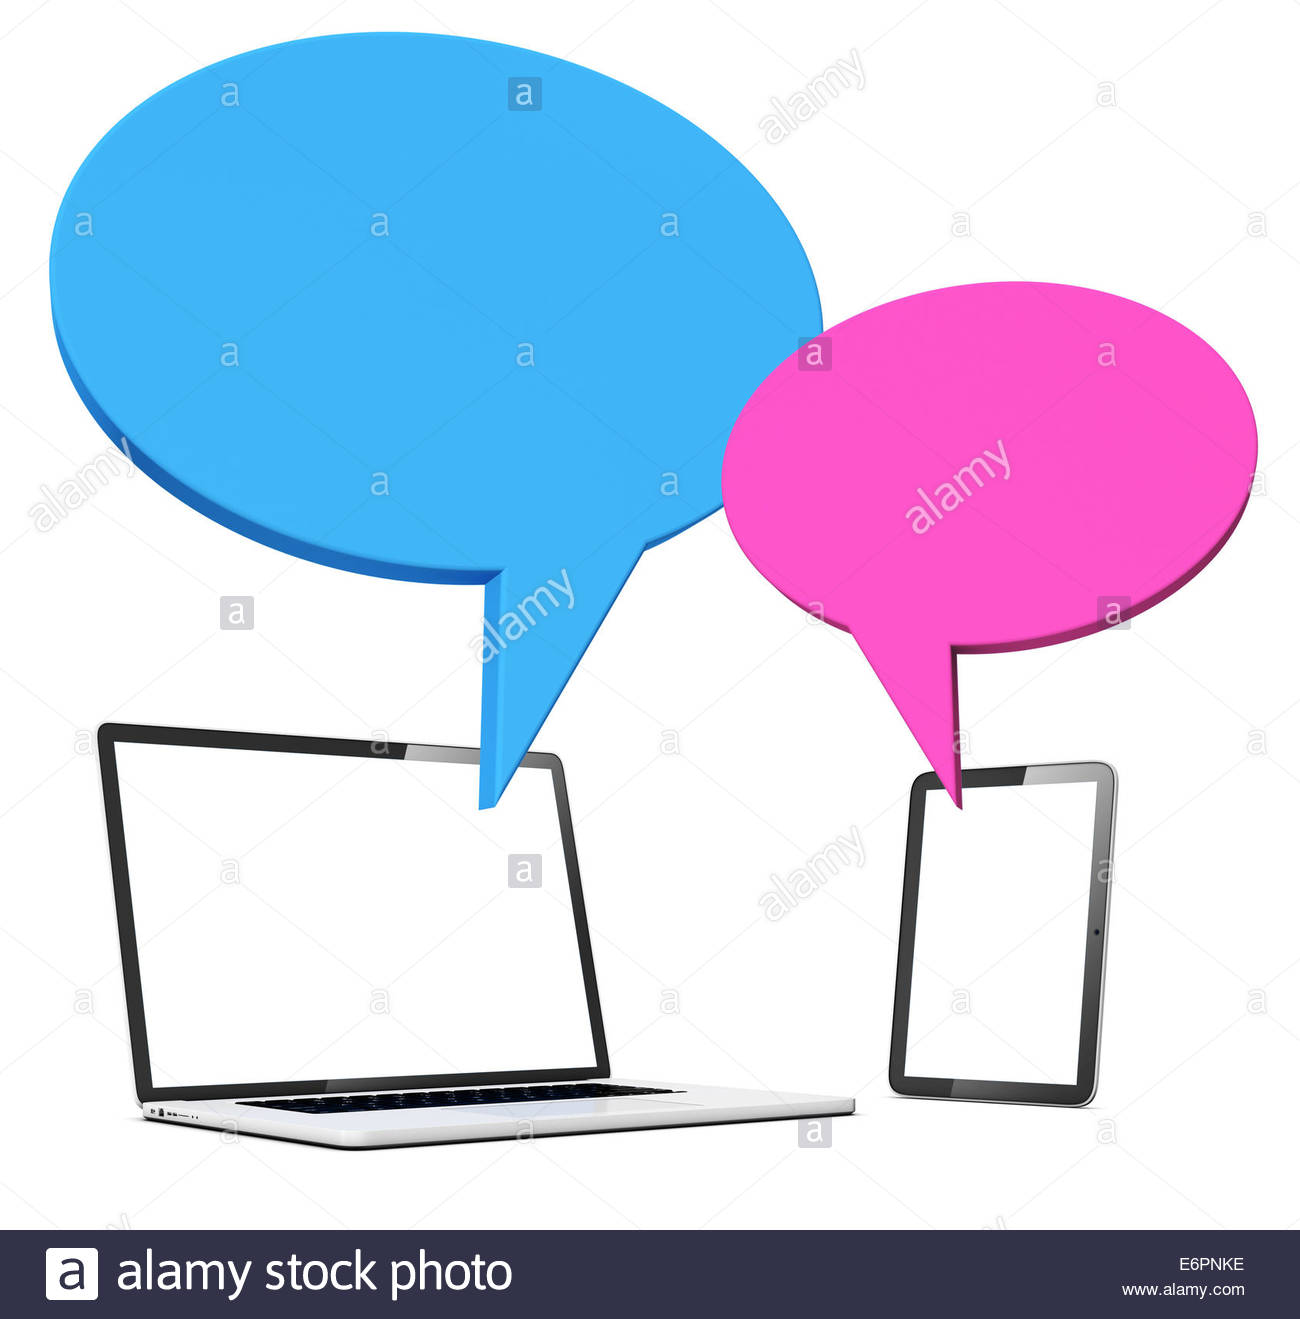 Speech Bubble With Laptop And Table Stock Photo, Royalty Free.